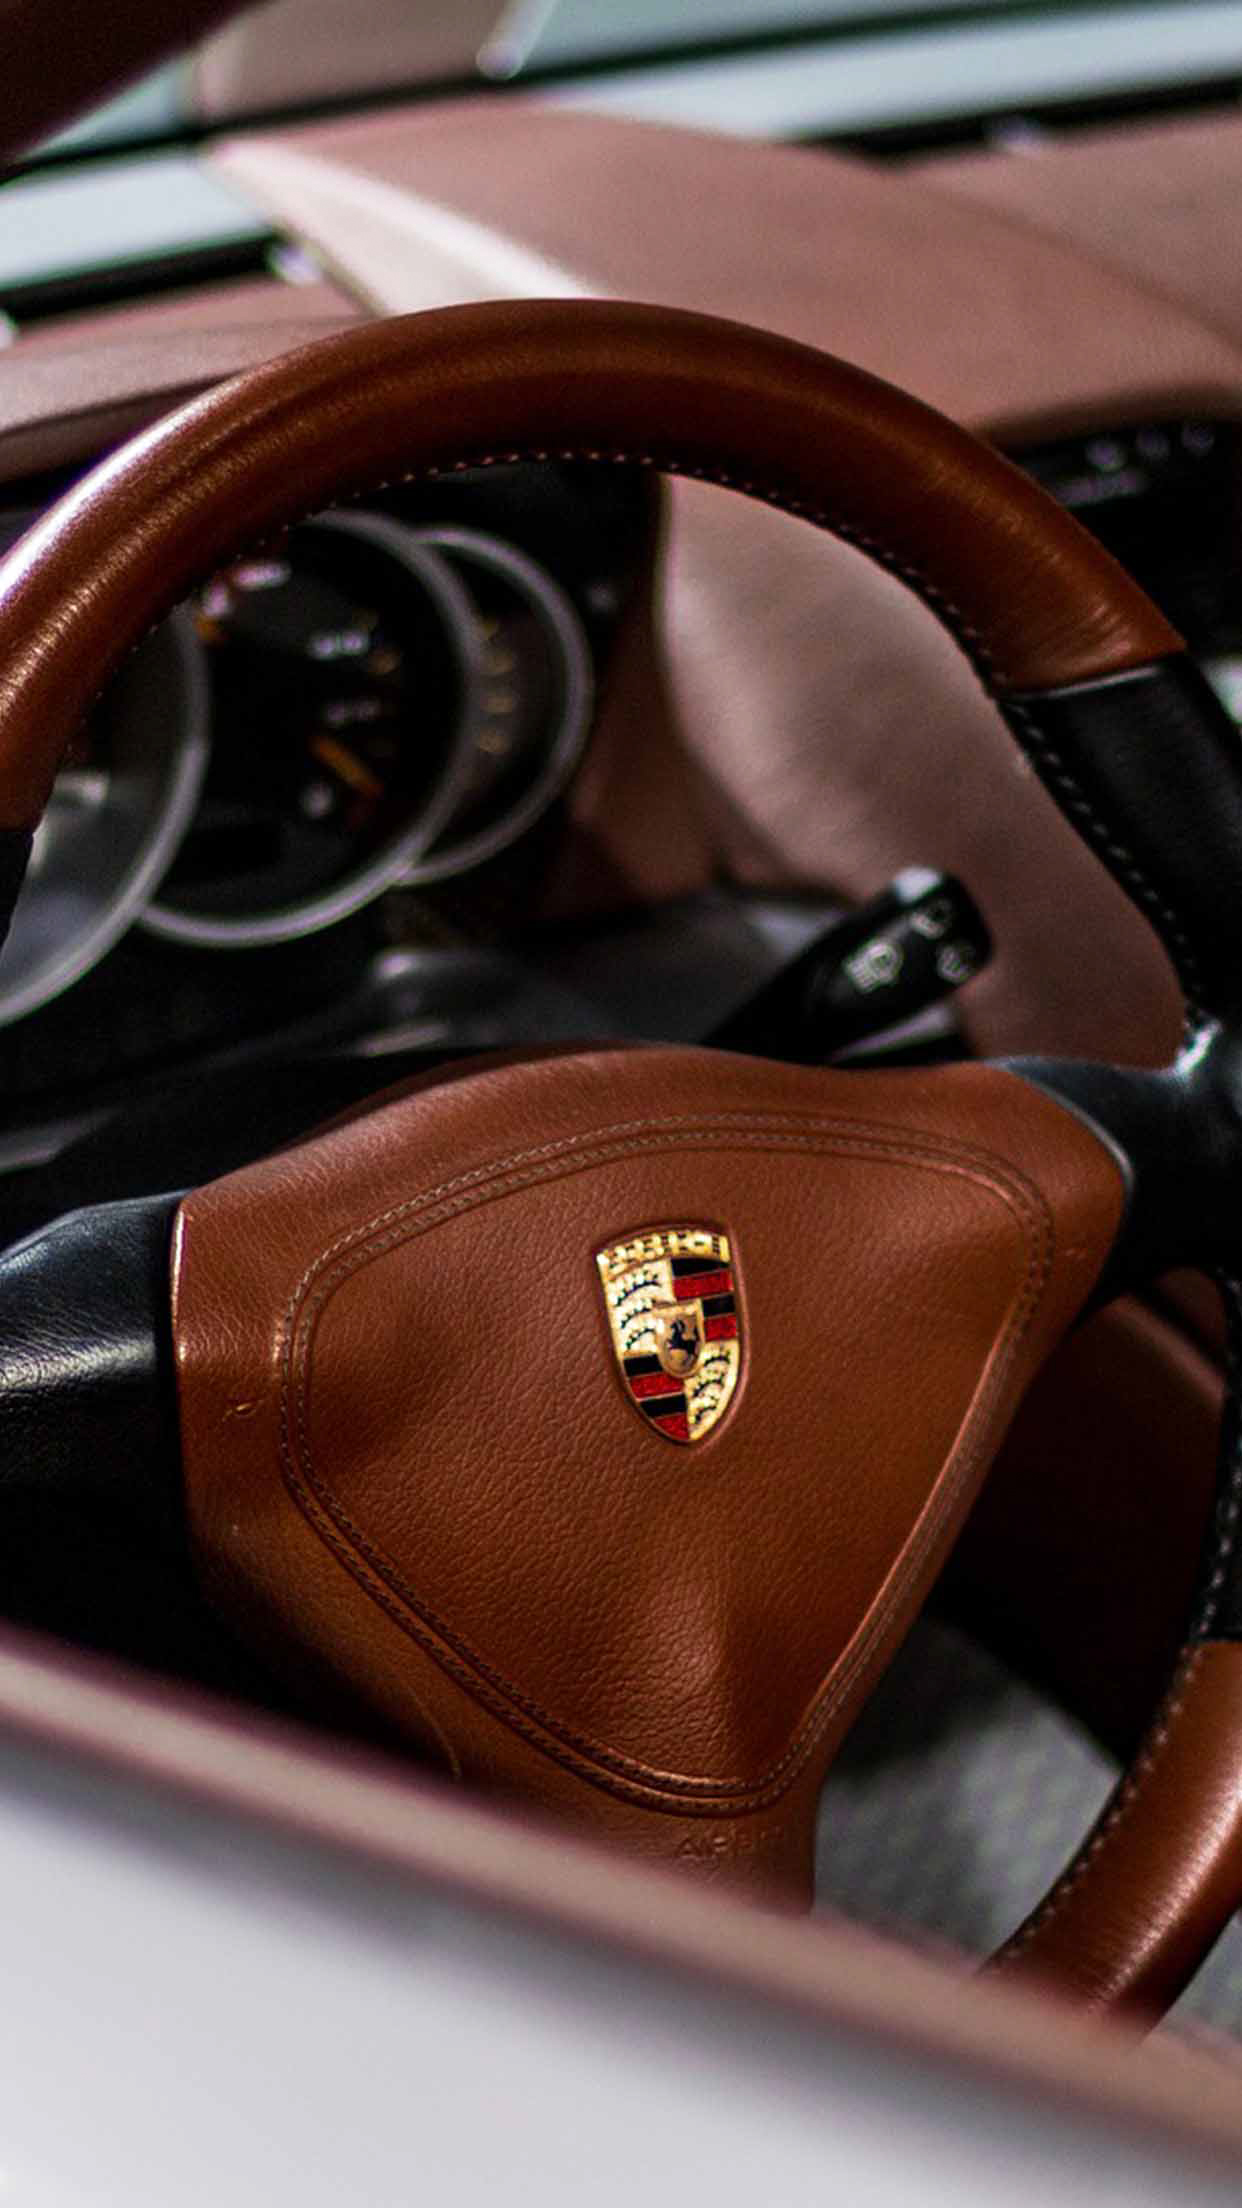 Porsche Leather design 5k Wallpaper